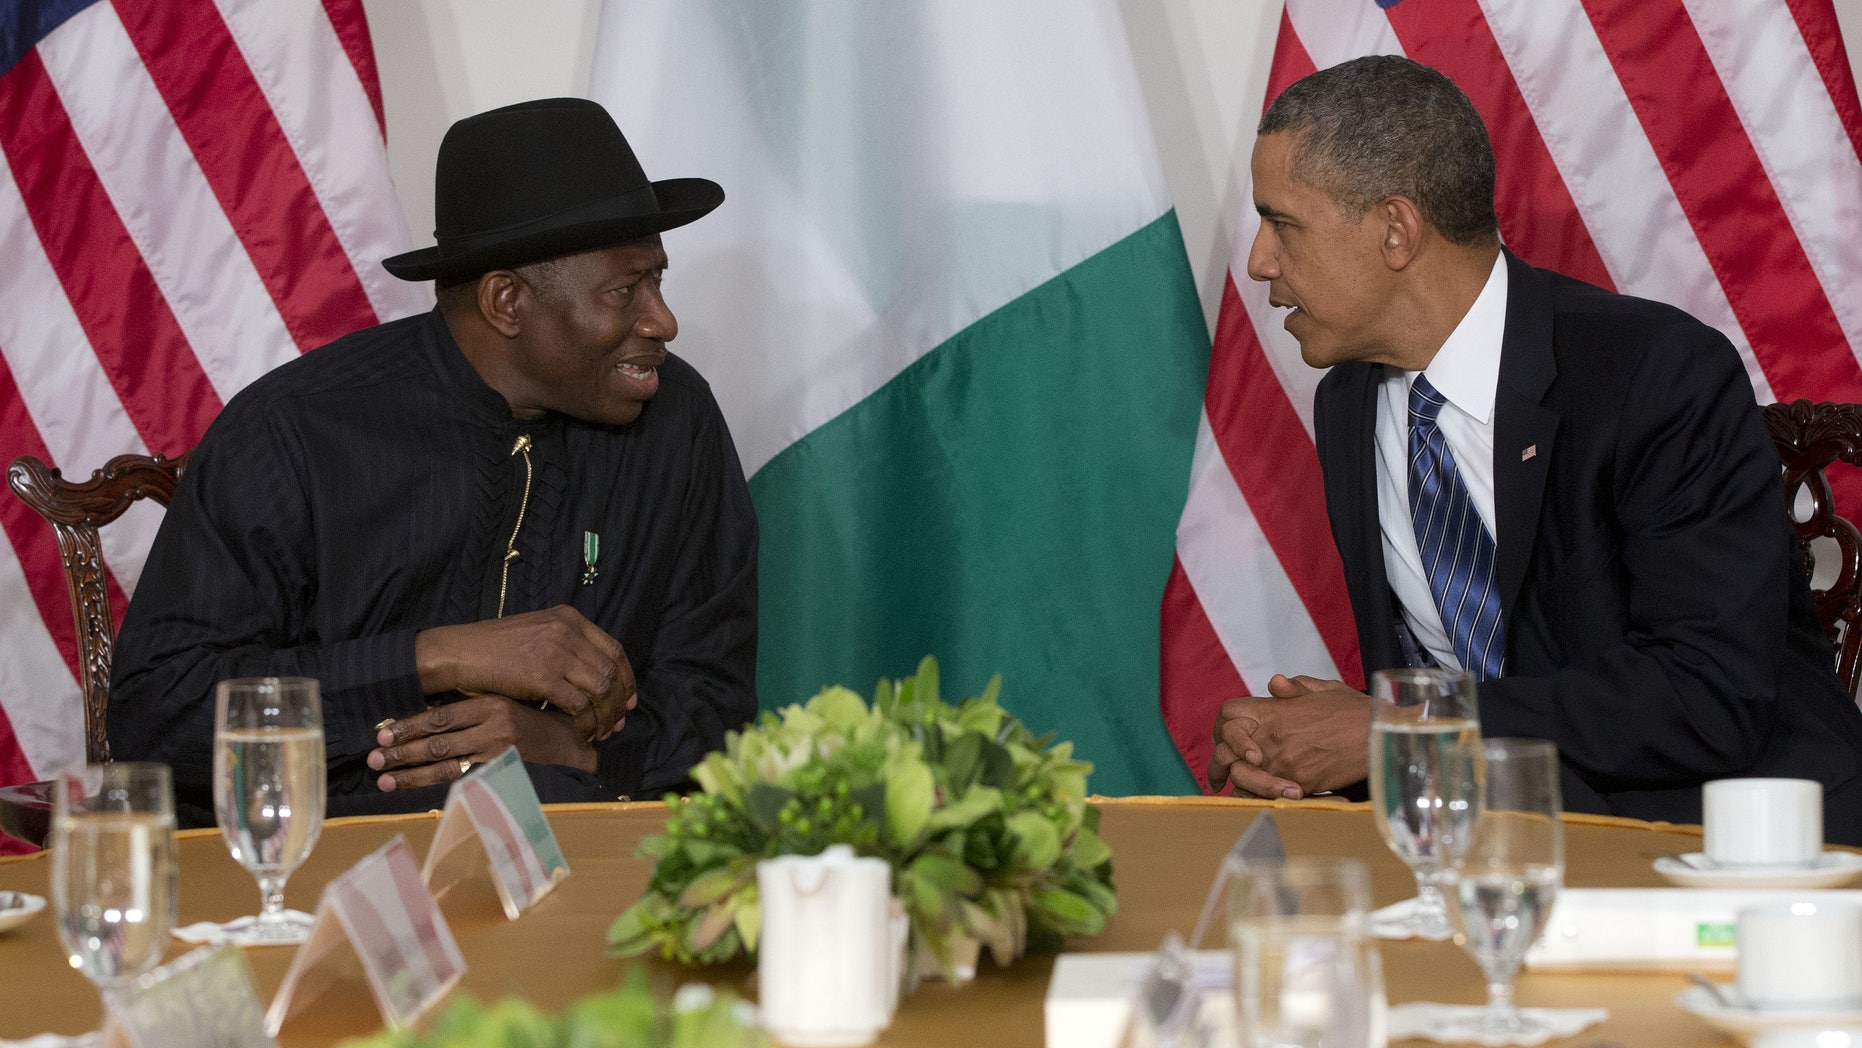 "FILE - President Barack Obama meets with Nigerian President Goodluck Jonathan in New York, in this Monday, Sept. 23, 2013 file photo.  The Associated Press on Monday Jan. 13 2014  obtained a copy of the previously unannounced Same Sex Marriage Prohibition Act  that was signed by President  Jonathan and dated Jan. 7 that bans same-sex marriage and criminalizes homosexual associations, societies and meetings, with penalties of up to 14 years in jail. Secretary of State John Kerry said Monday the United States was ""deeply concerned"" by a law that ""dangerously restricts freedom of assembly, association, and expression for all Nigerians."" (AP Photo/Pablo Martinez Monsivais, File)"